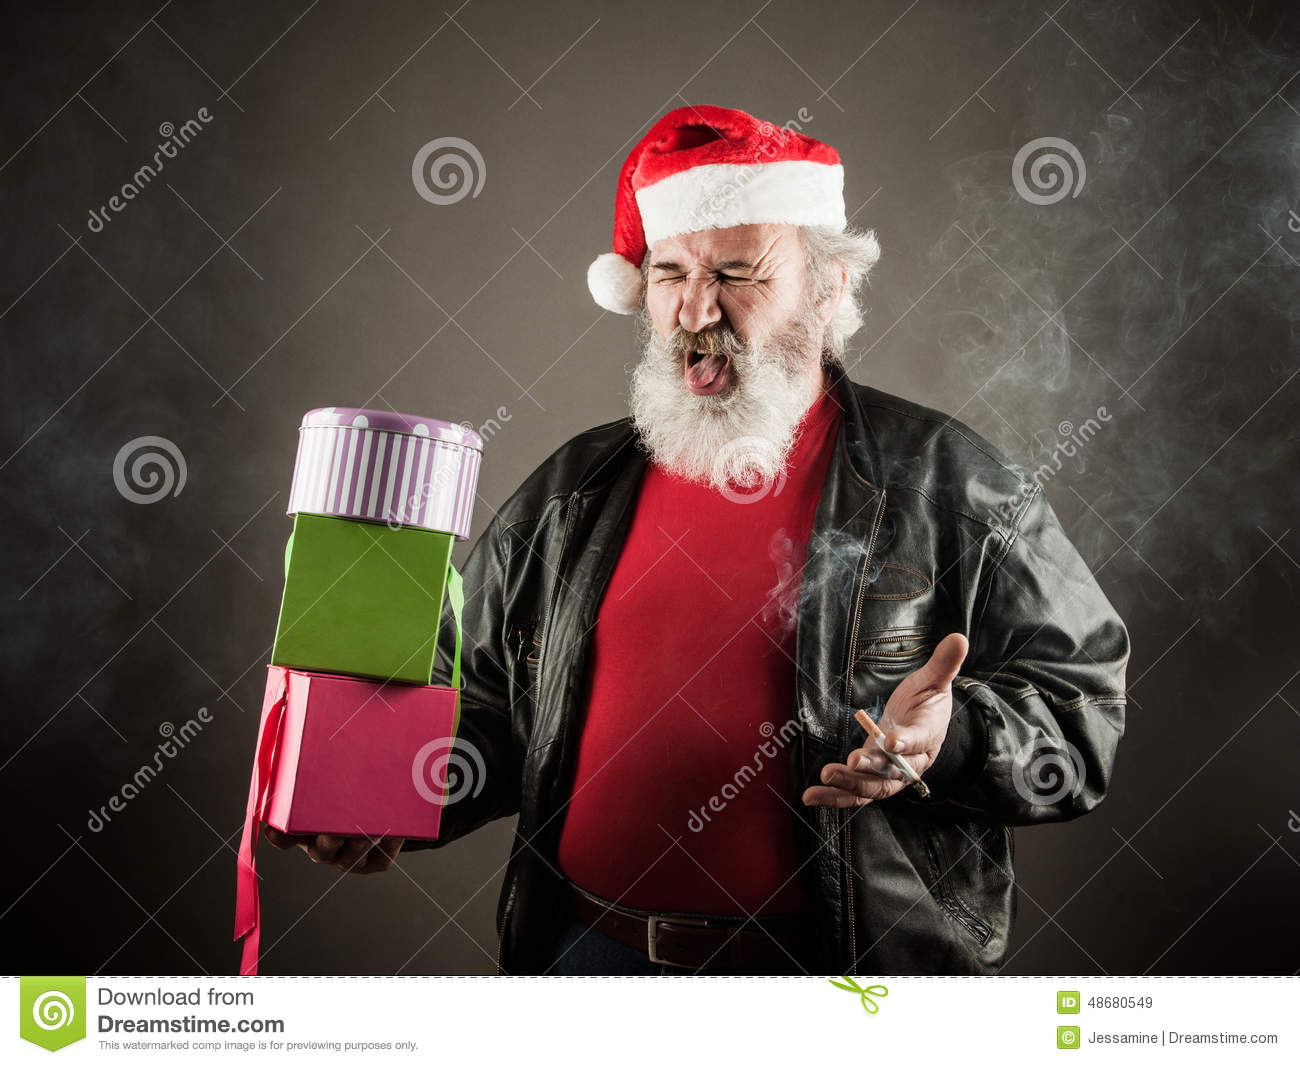 Grumpy Santa Claus Stock Photo Image 48680549